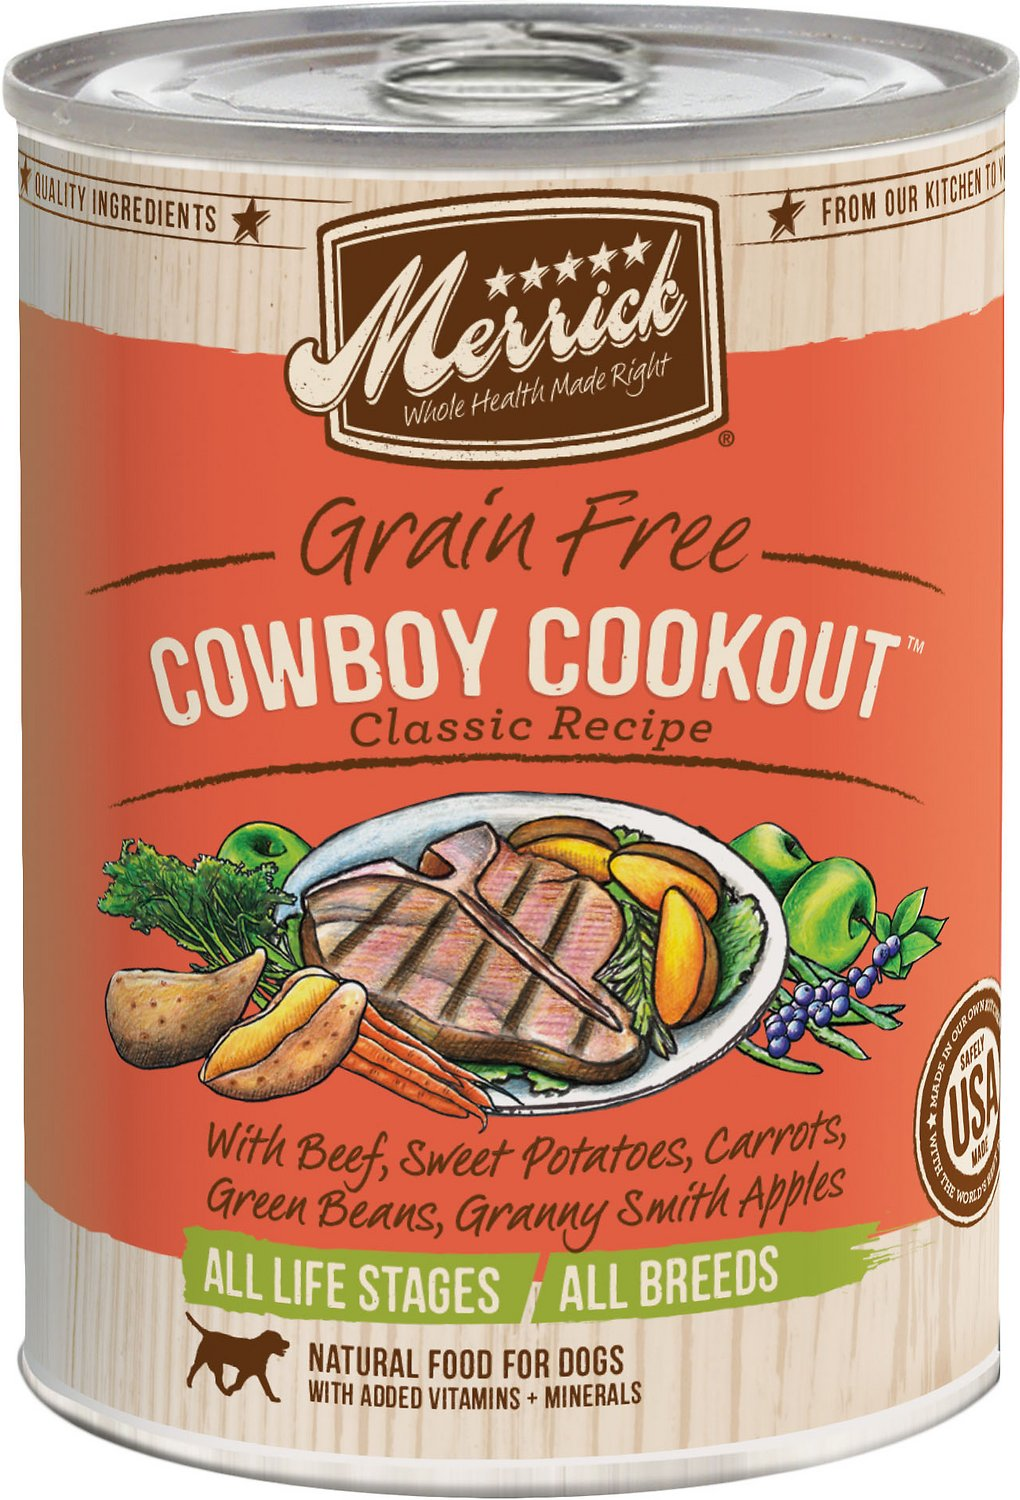 Merrick Grain-Free Cowboy Cookout Canned Dog Food, 12.7-oz